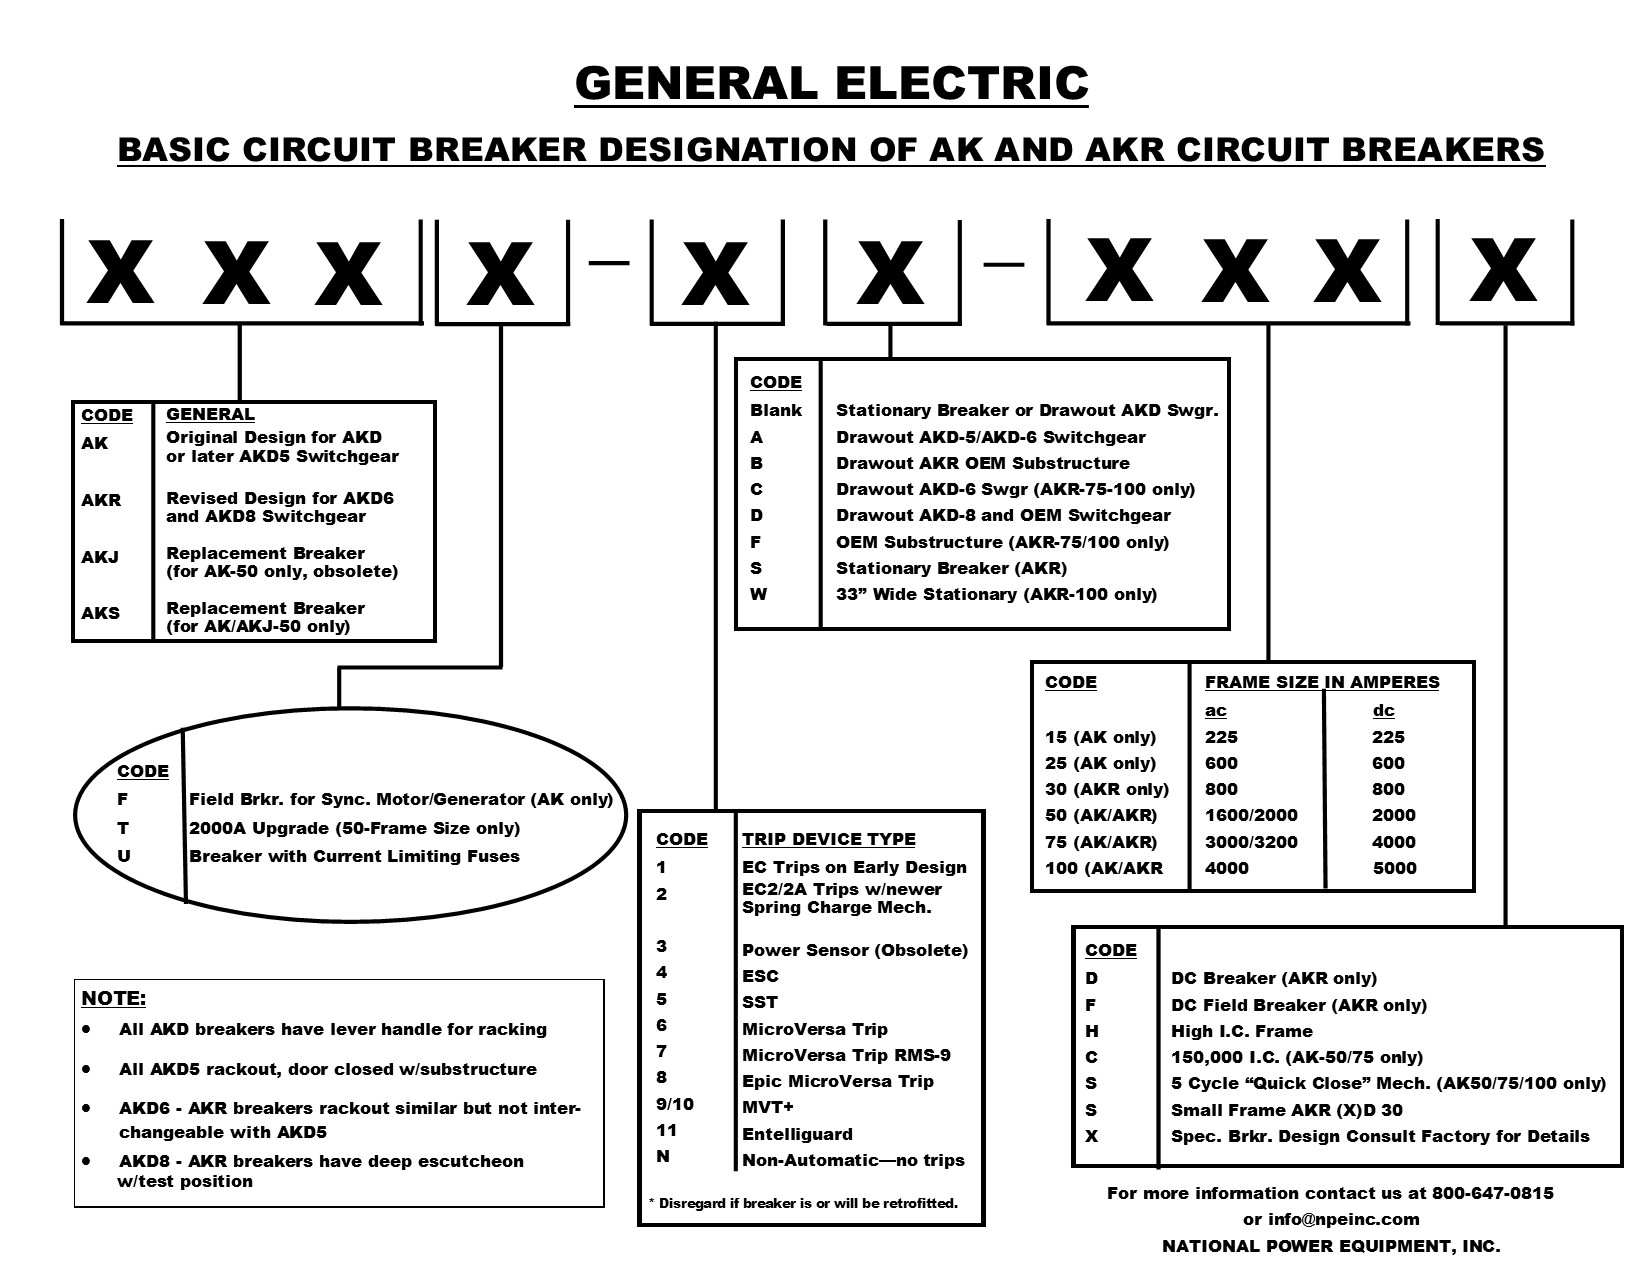 hight resolution of  electric circuit breakers diagram how to find and identify old or obsolete ge general electricthis guide will help you